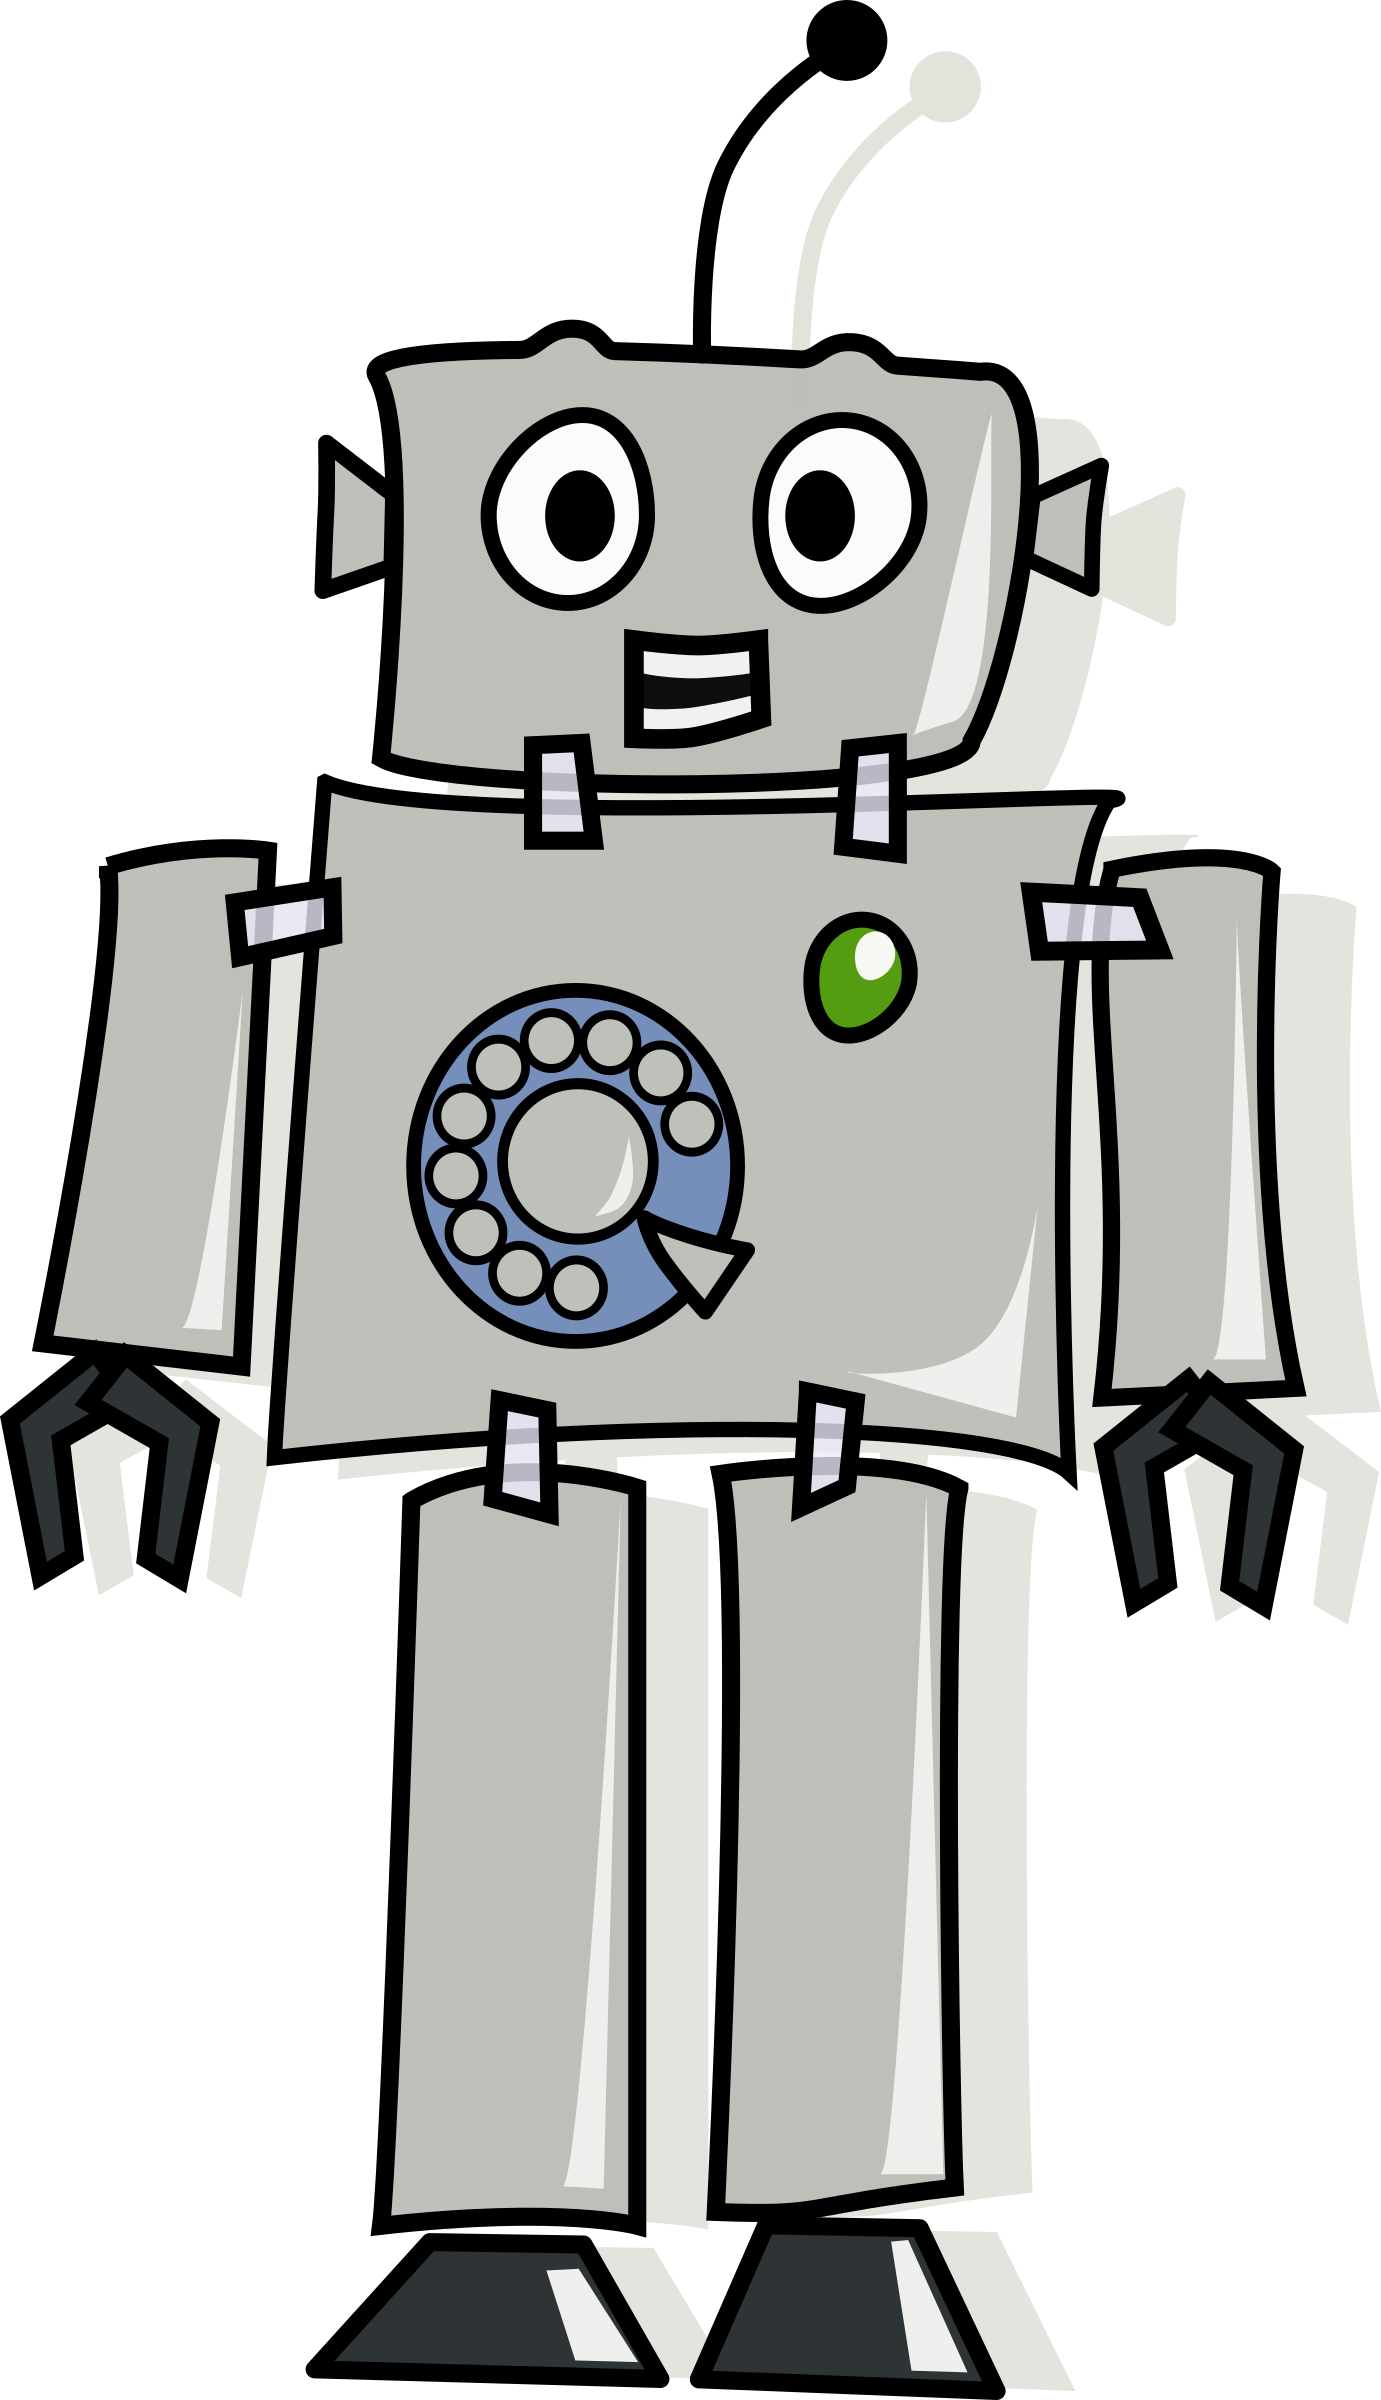 Telephone clipart answer phone. Answerphone robot big image